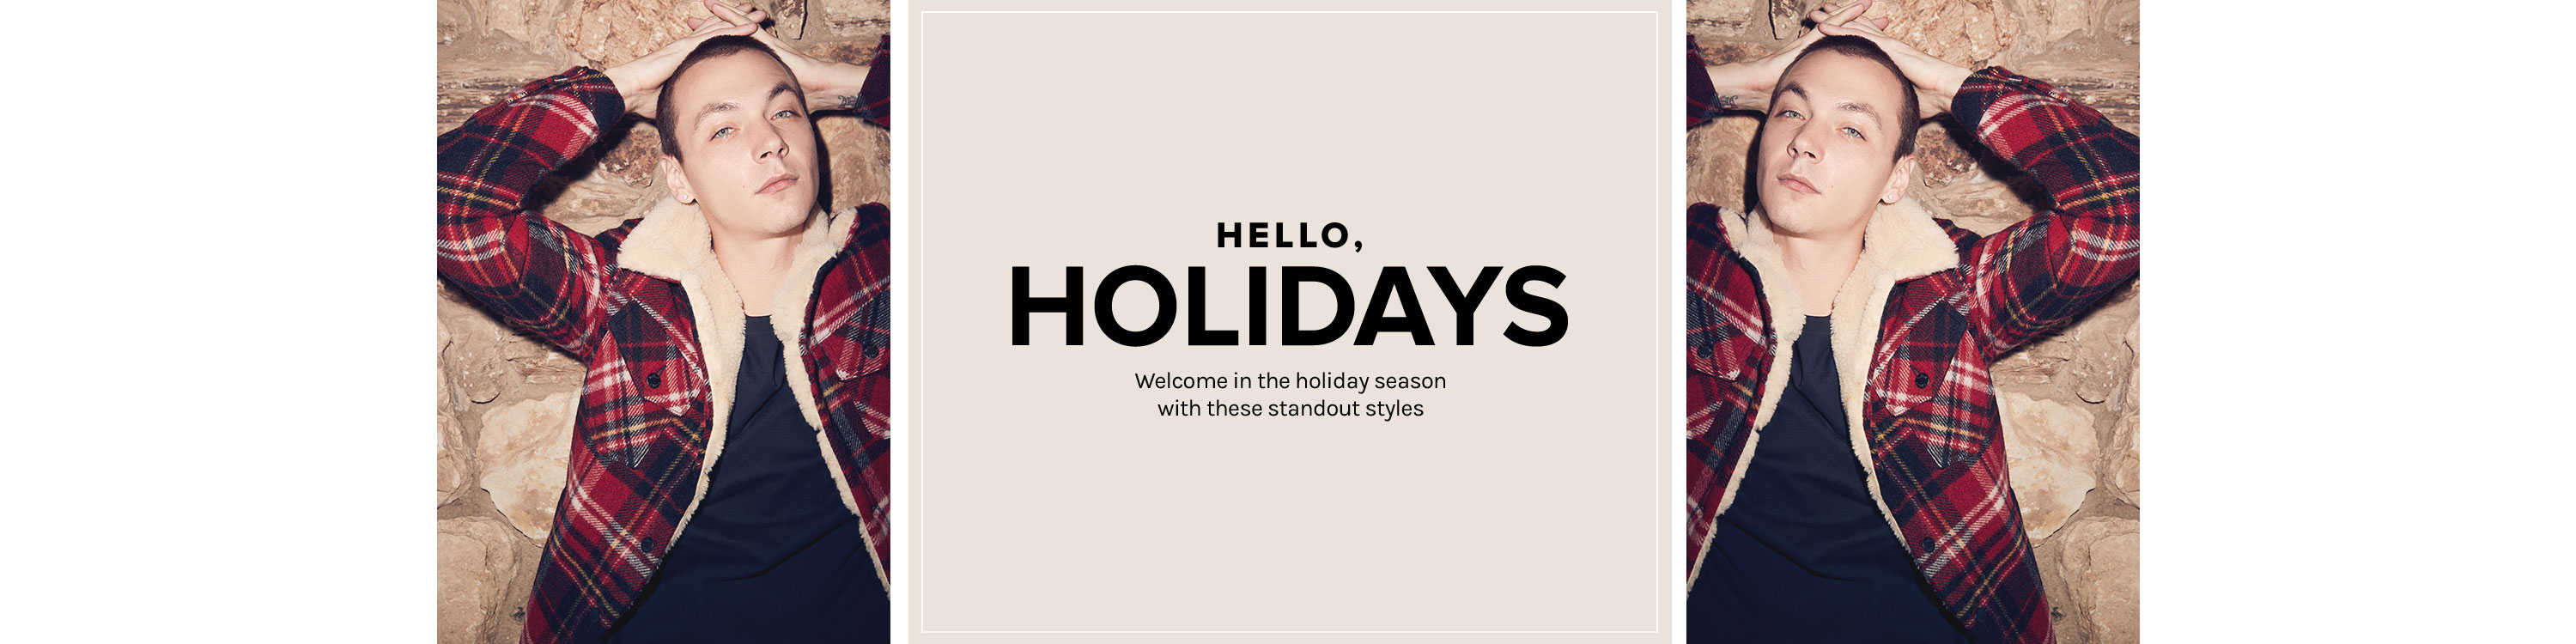 Hello, Holidays